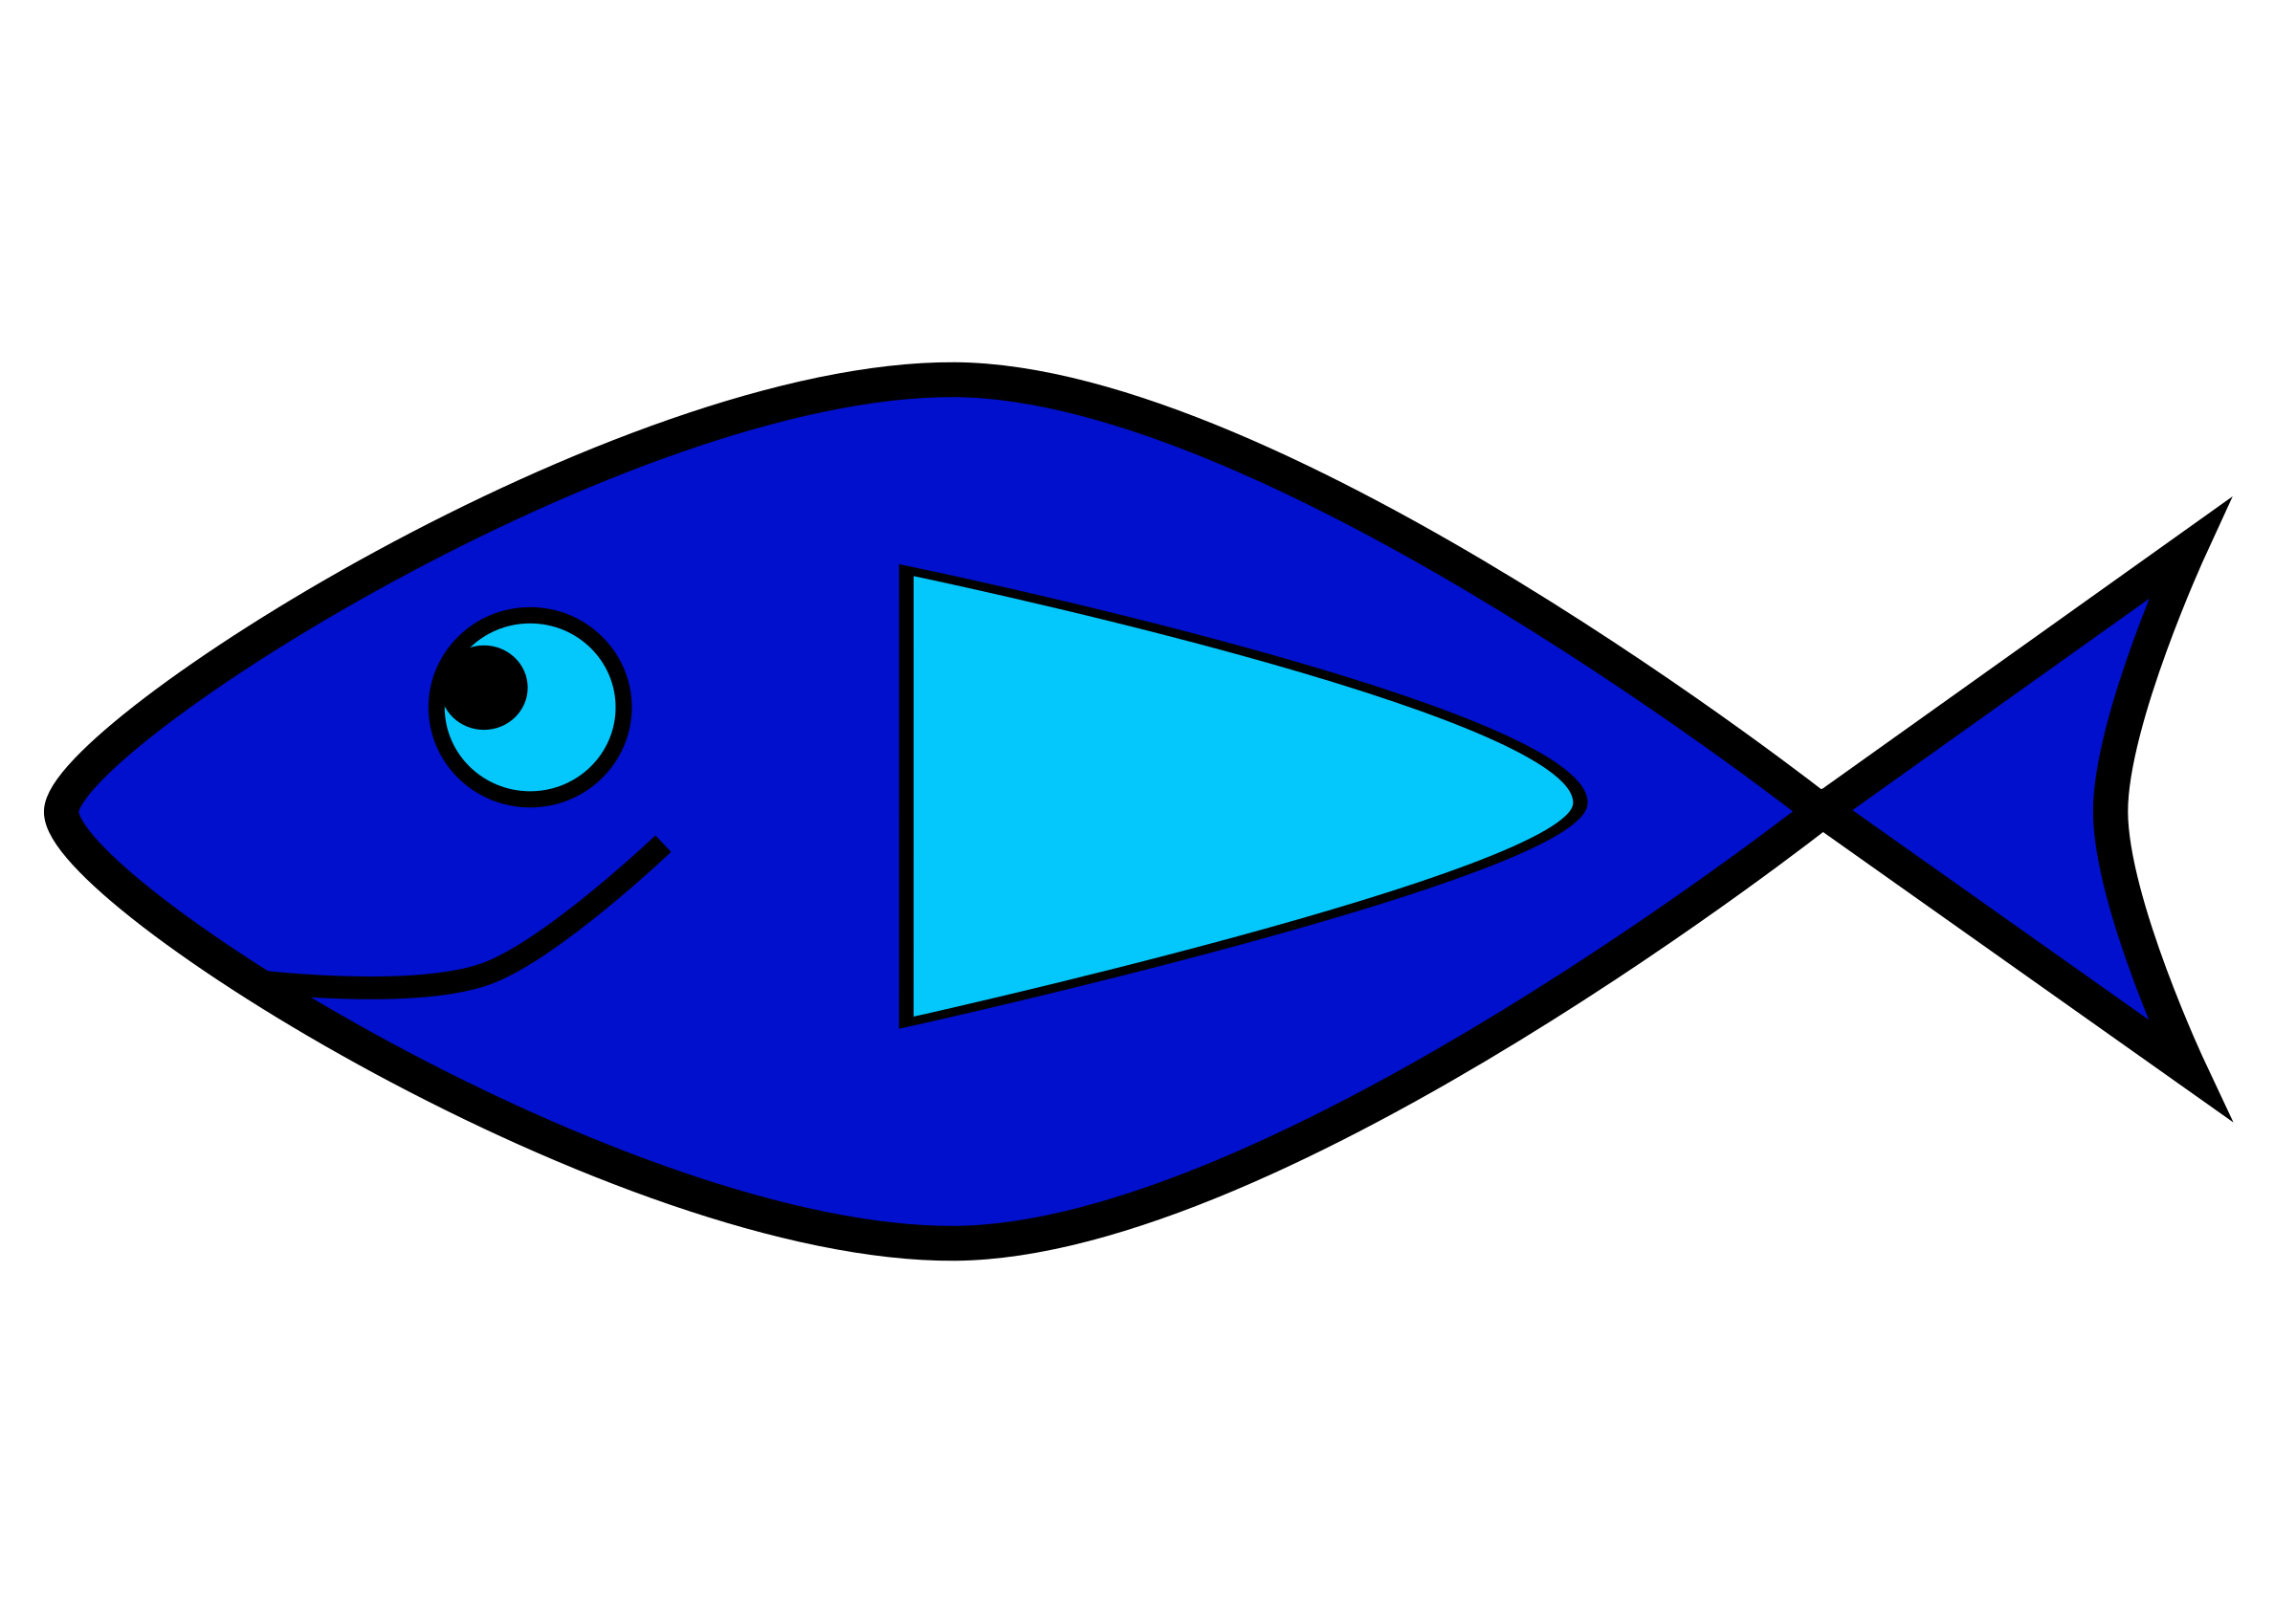 Simple fish 2 by sincrosergio